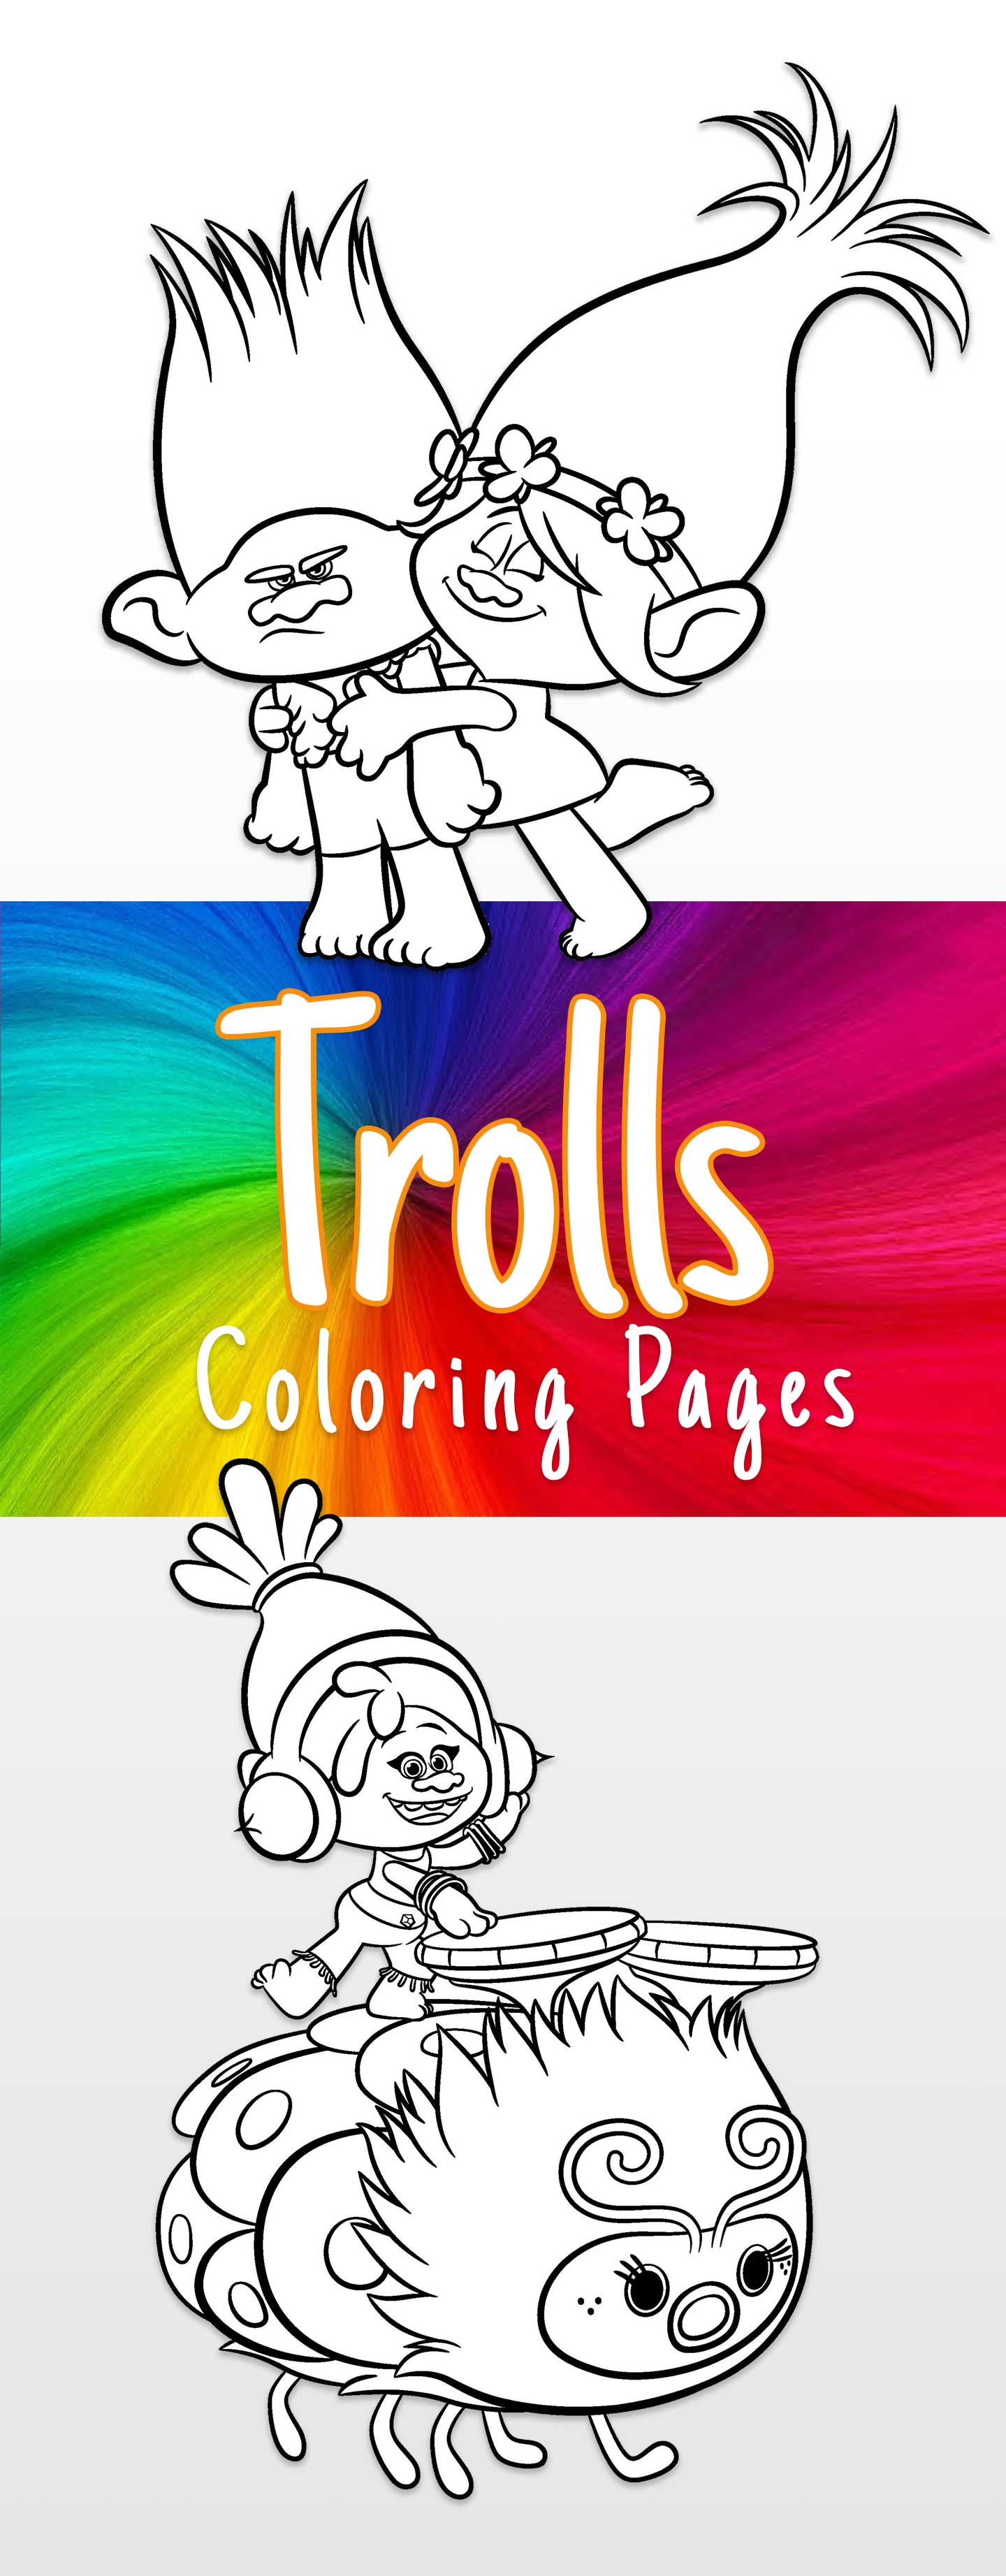 Trolls coloring sheets and printable